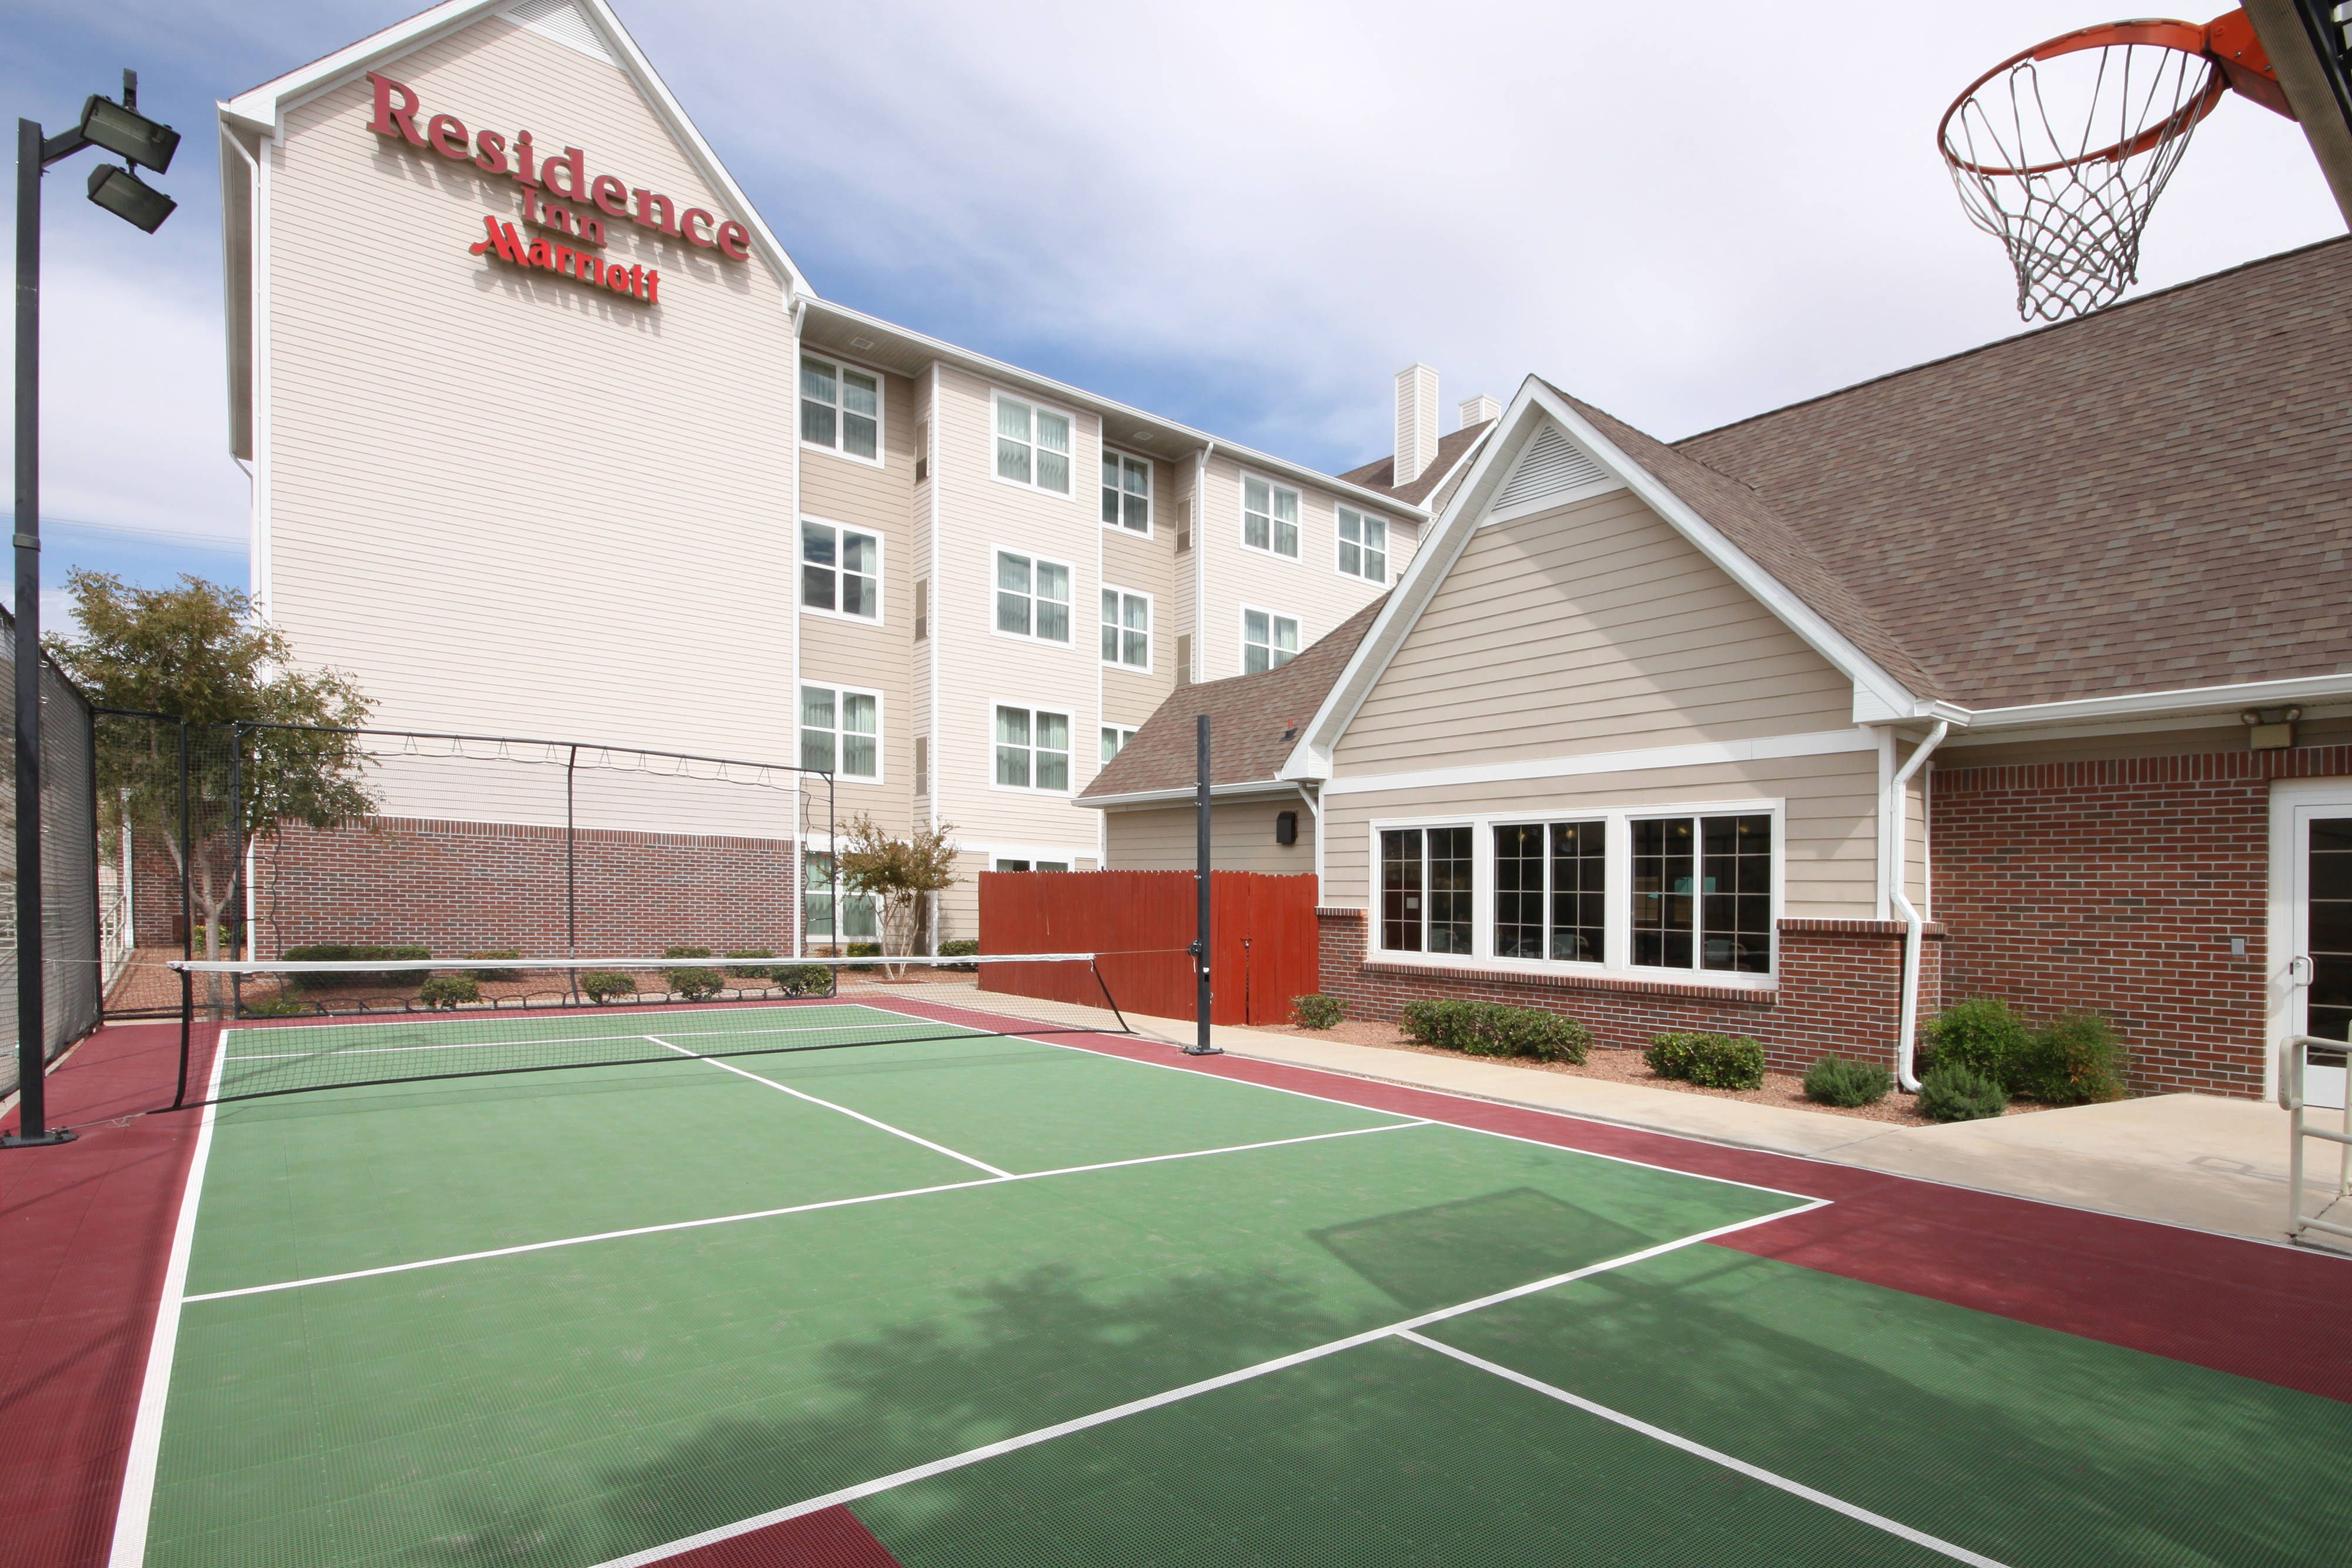 Residence Inn El Paso Sport Court happy, holiday, Guest